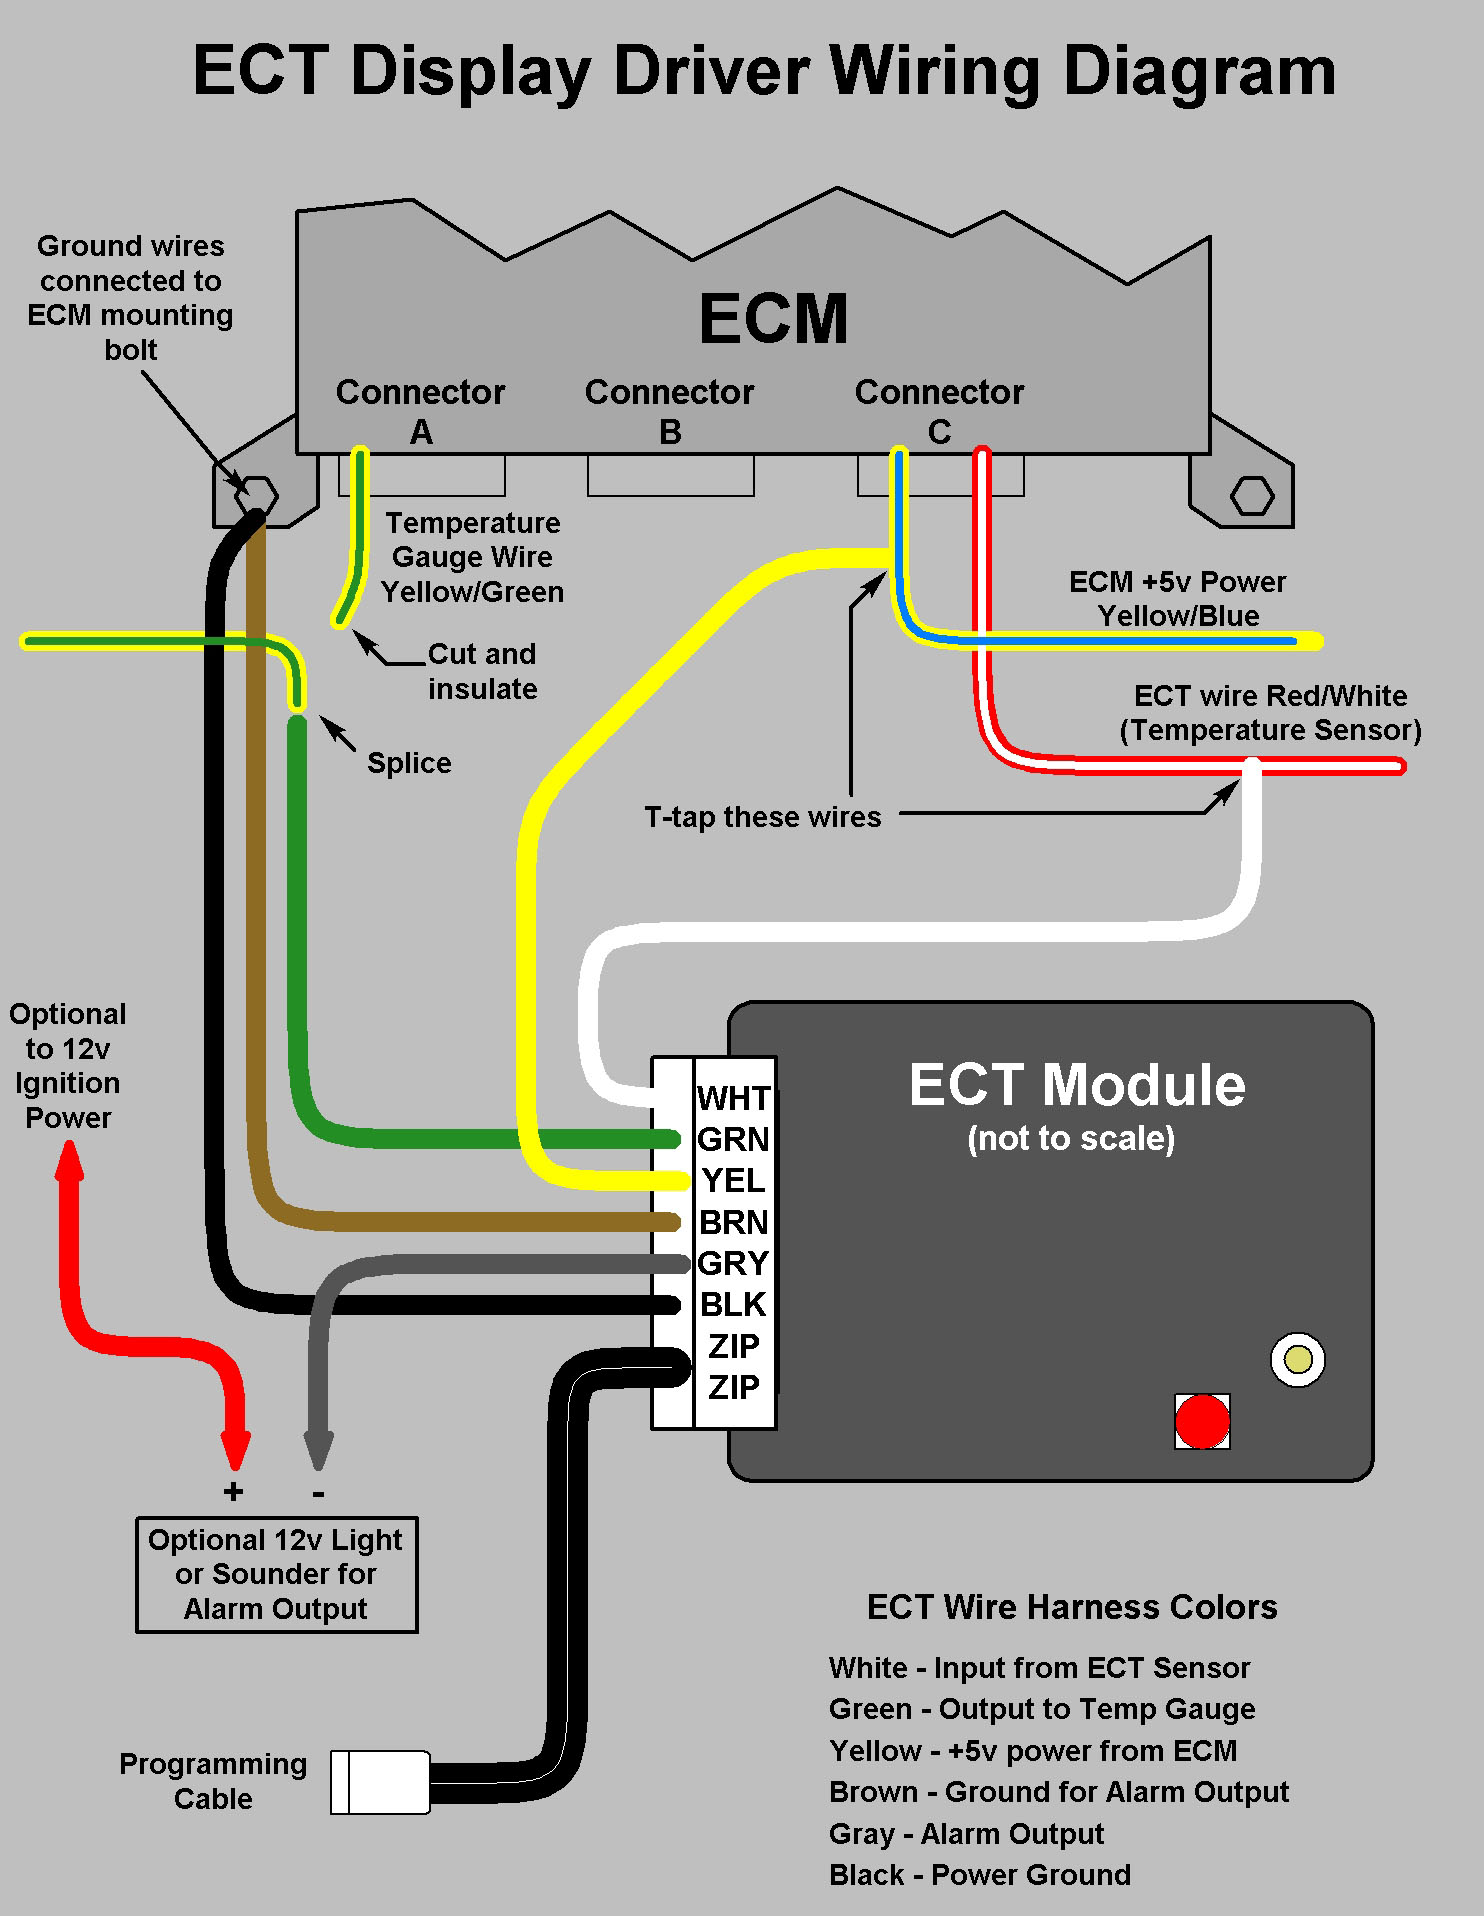 ECT wiring diagram ems wiring diagram medical diagram \u2022 free wiring diagrams life ems 8860 wiring diagram at honlapkeszites.co